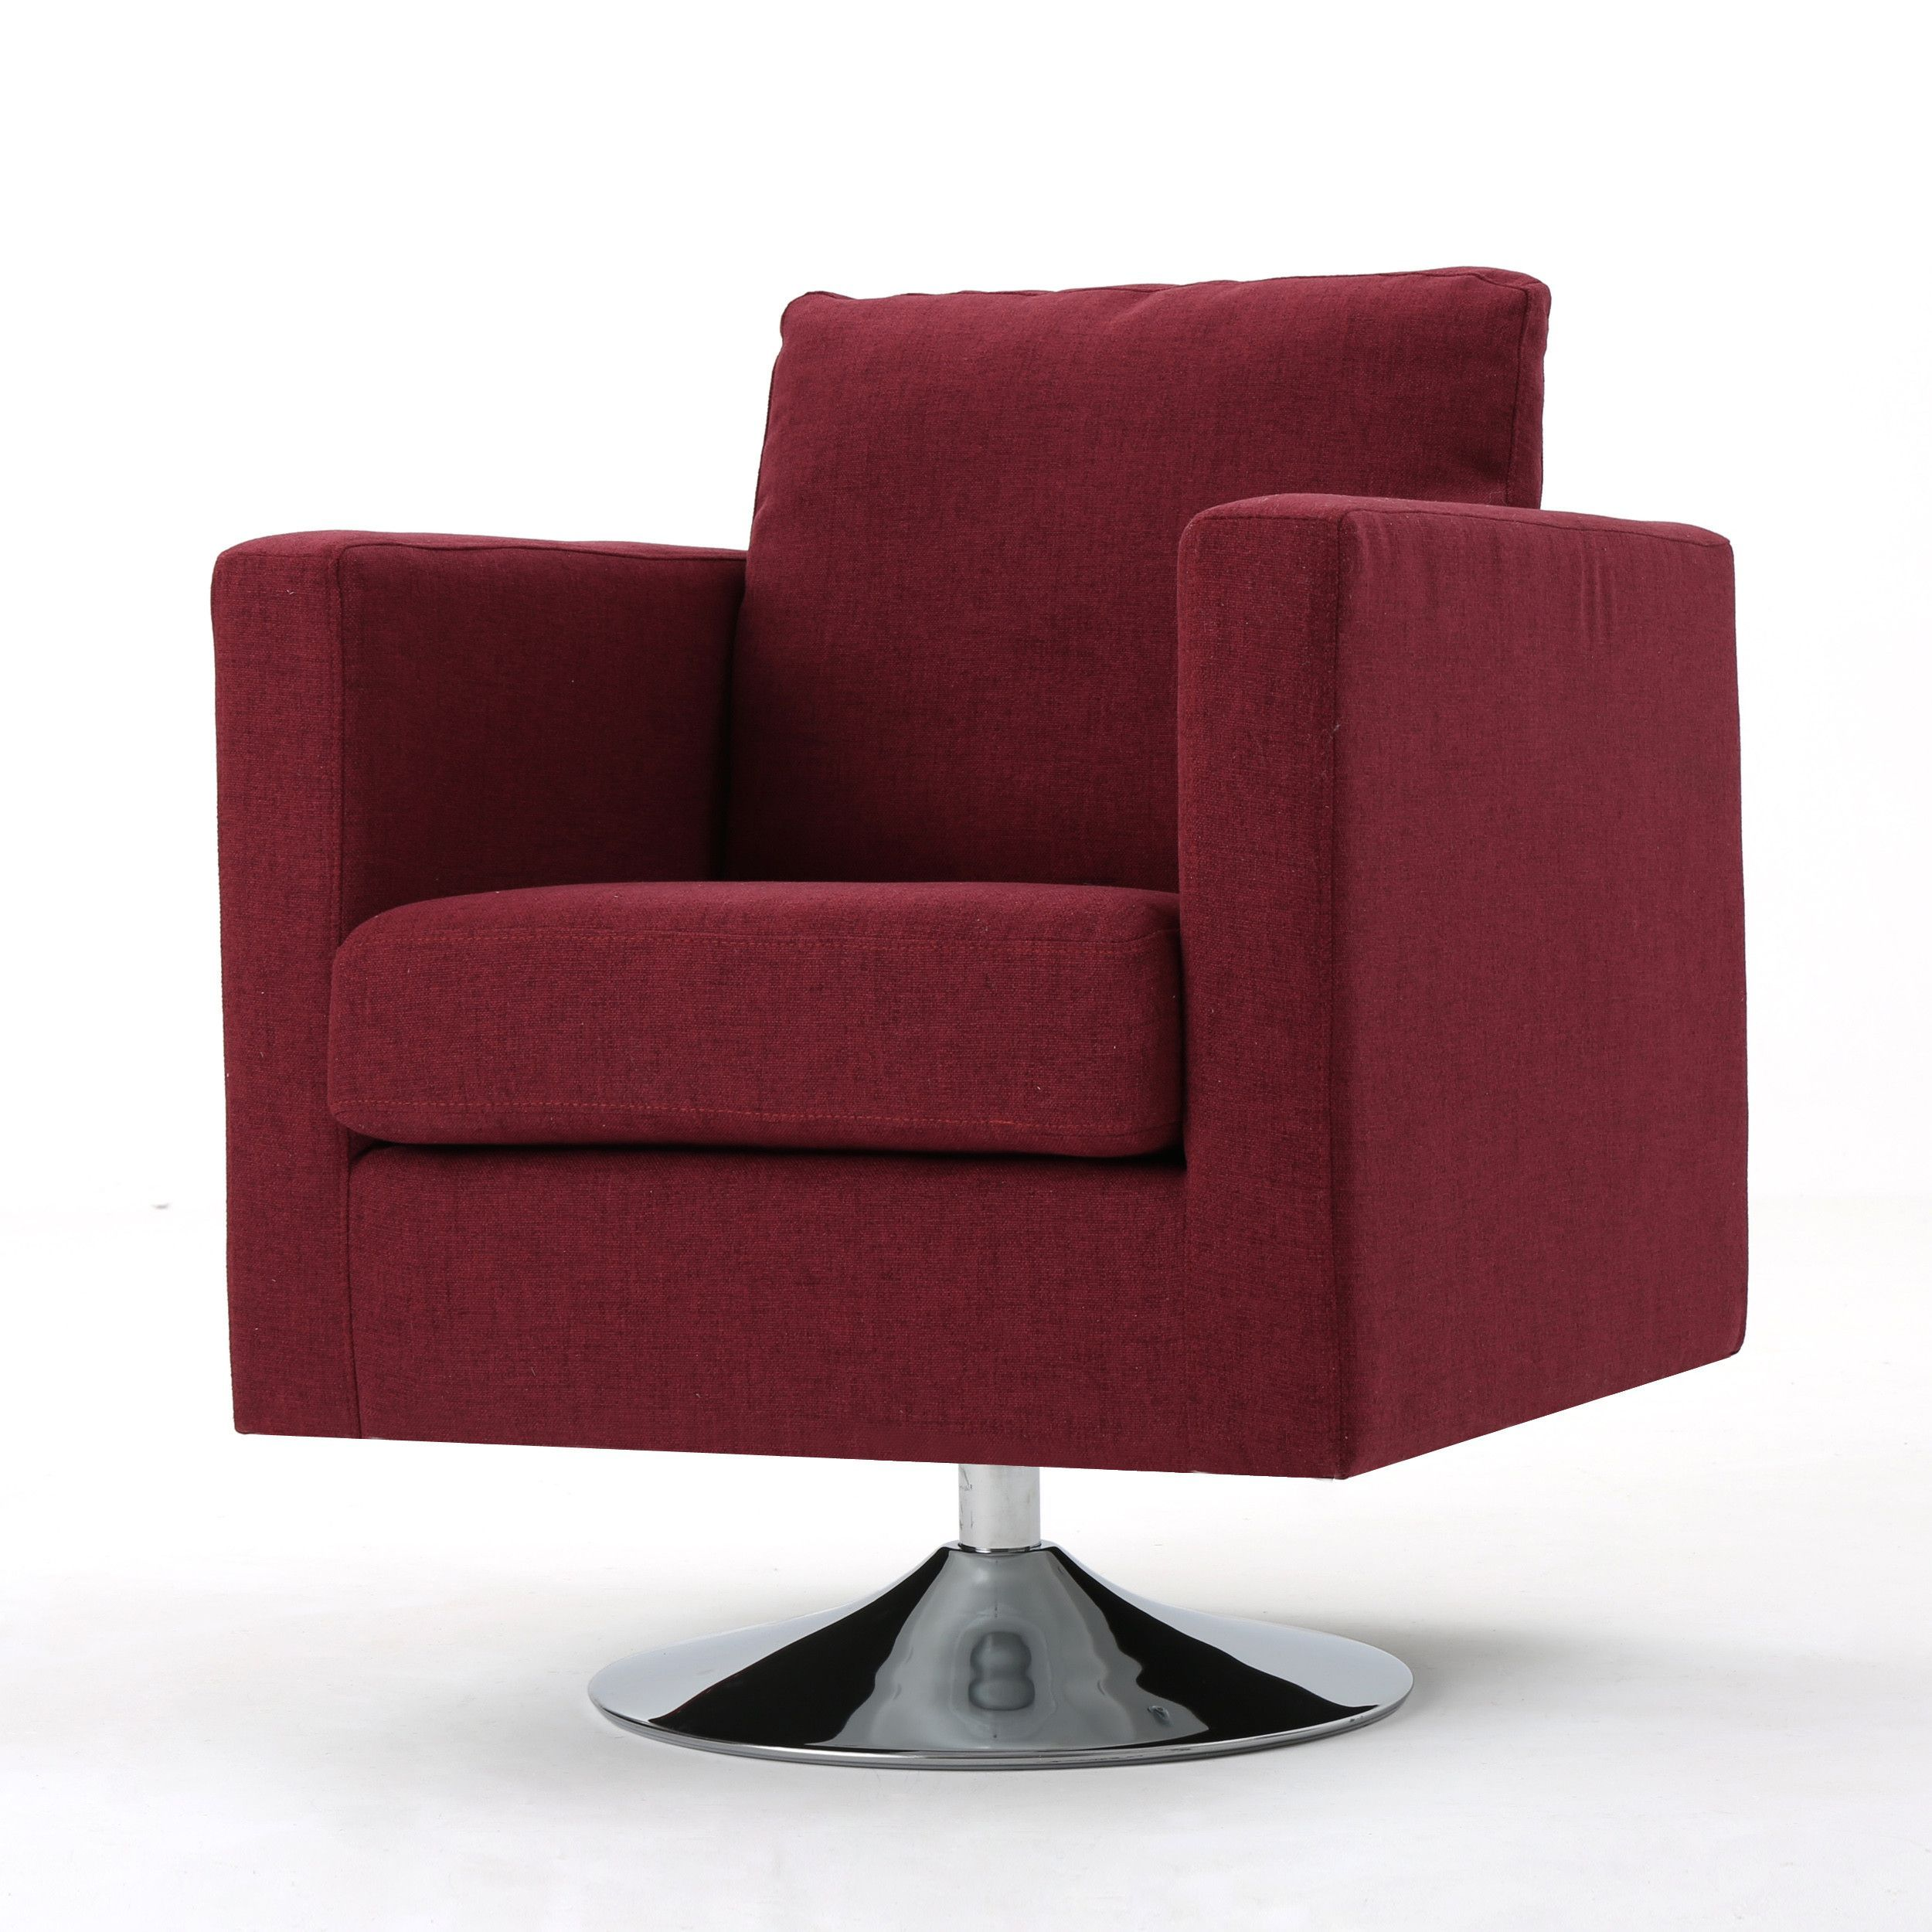 Add A Touch Of Modern To Your Home Today With This Swivel Chair Featuring Design Chrome Base Does It All